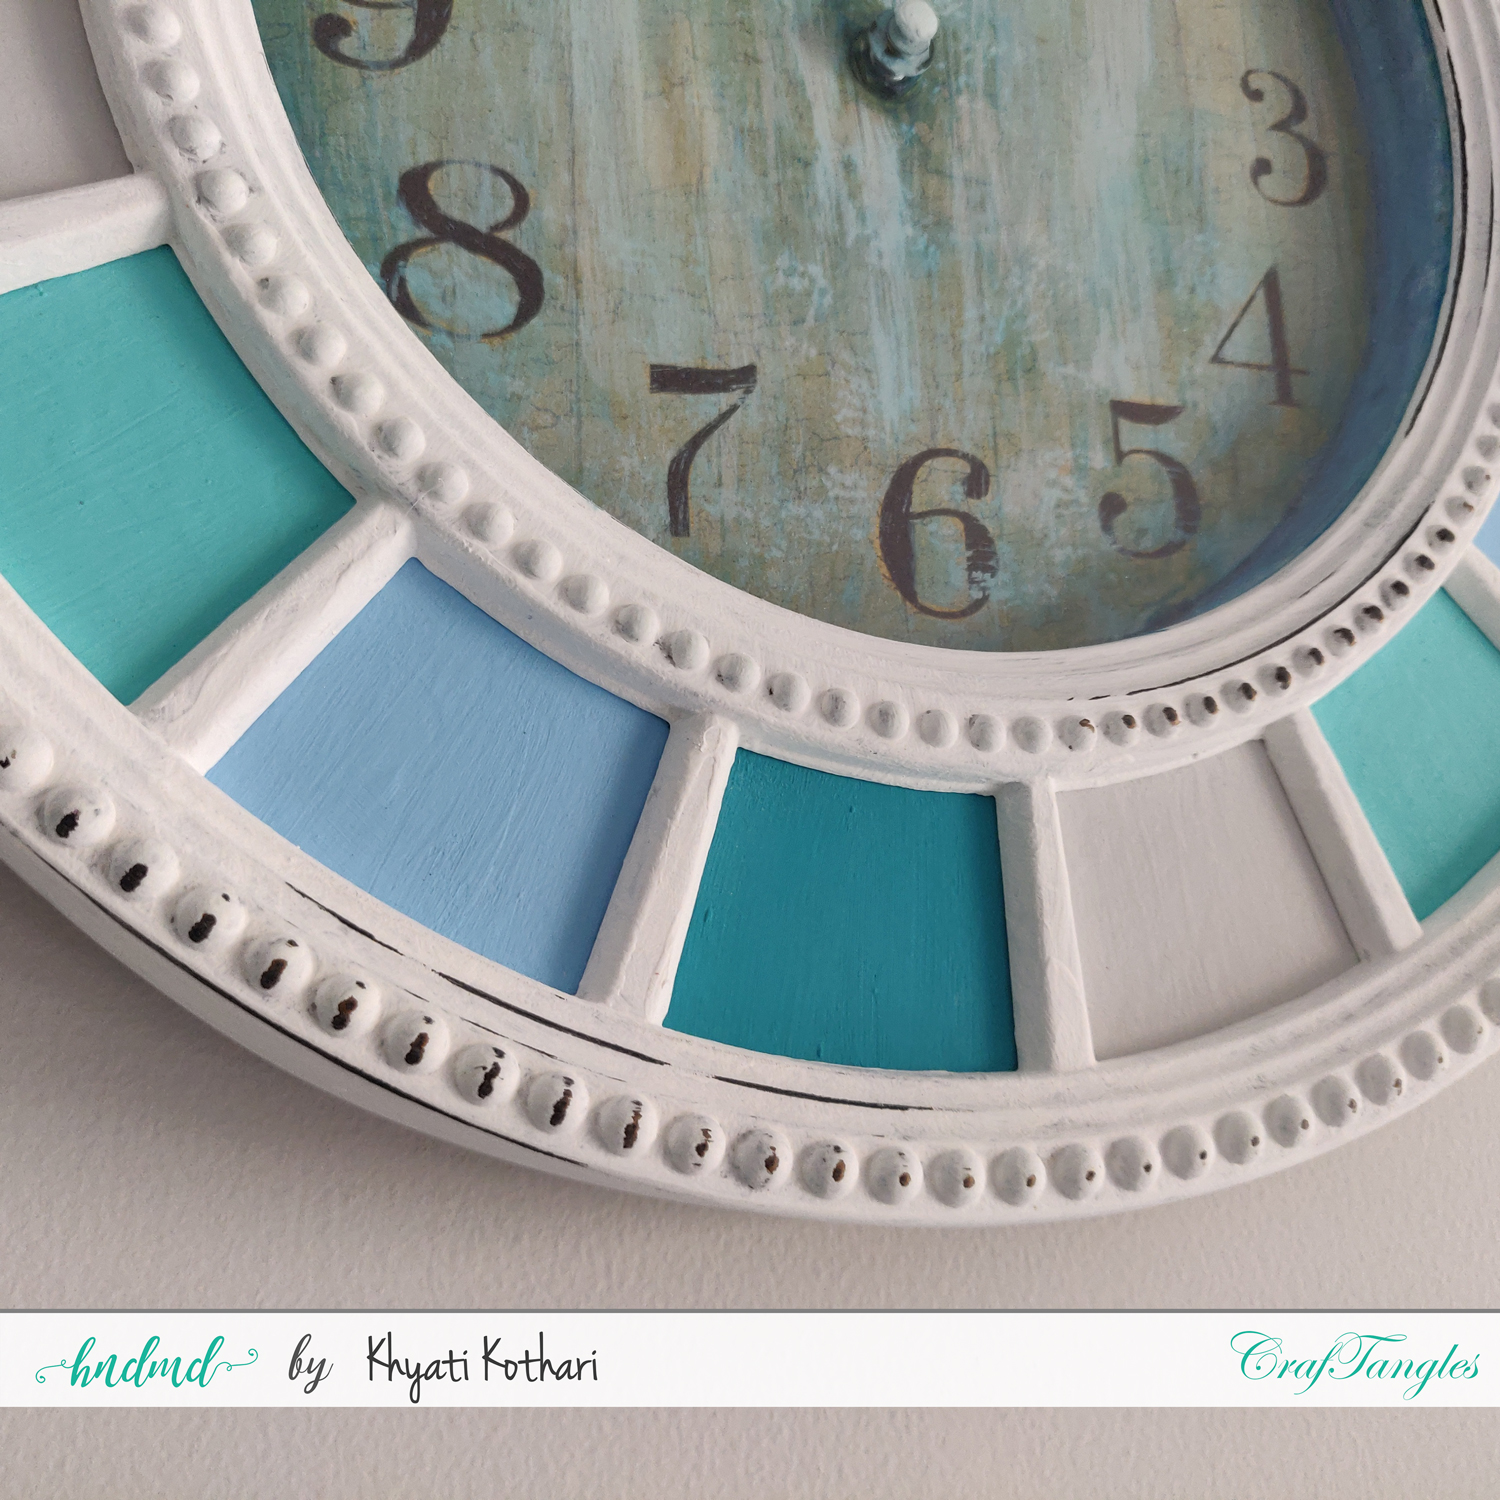 Altered Clock using CrafTangles products with Video Tutorial 4